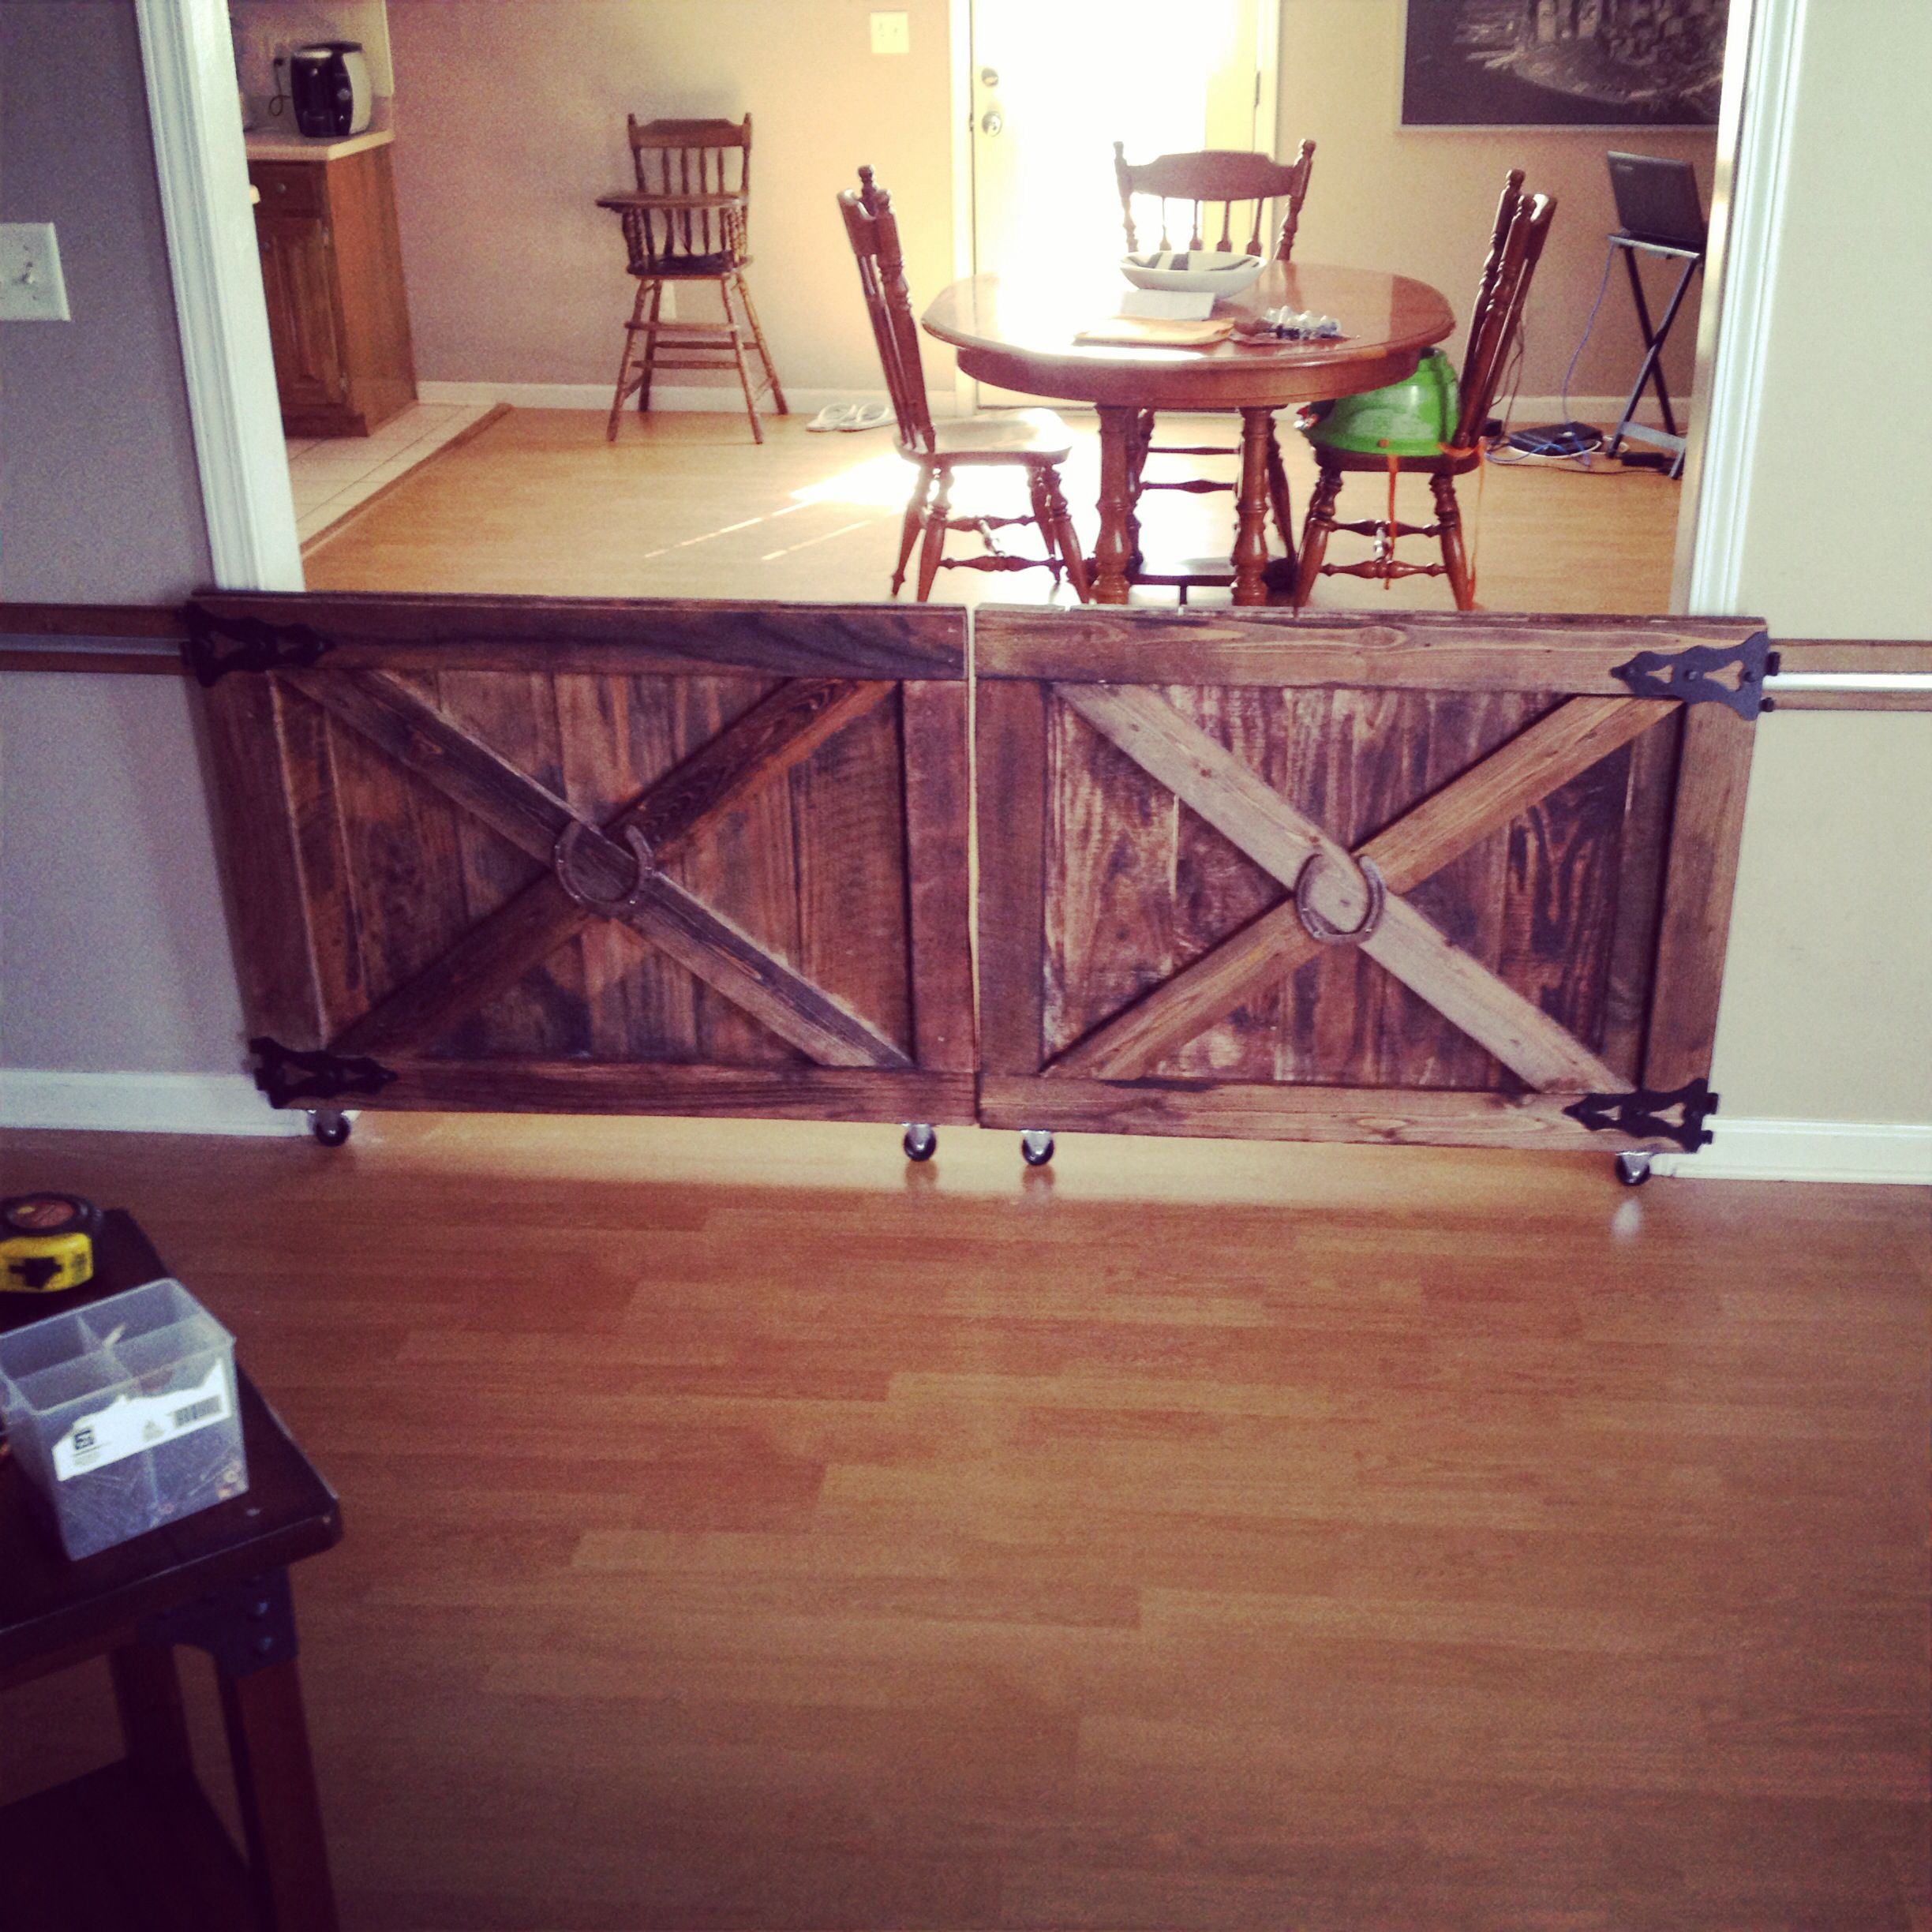 Pin By Destin Fuller On House Stuff Home Barn Door Baby Gate Making Barn Doors